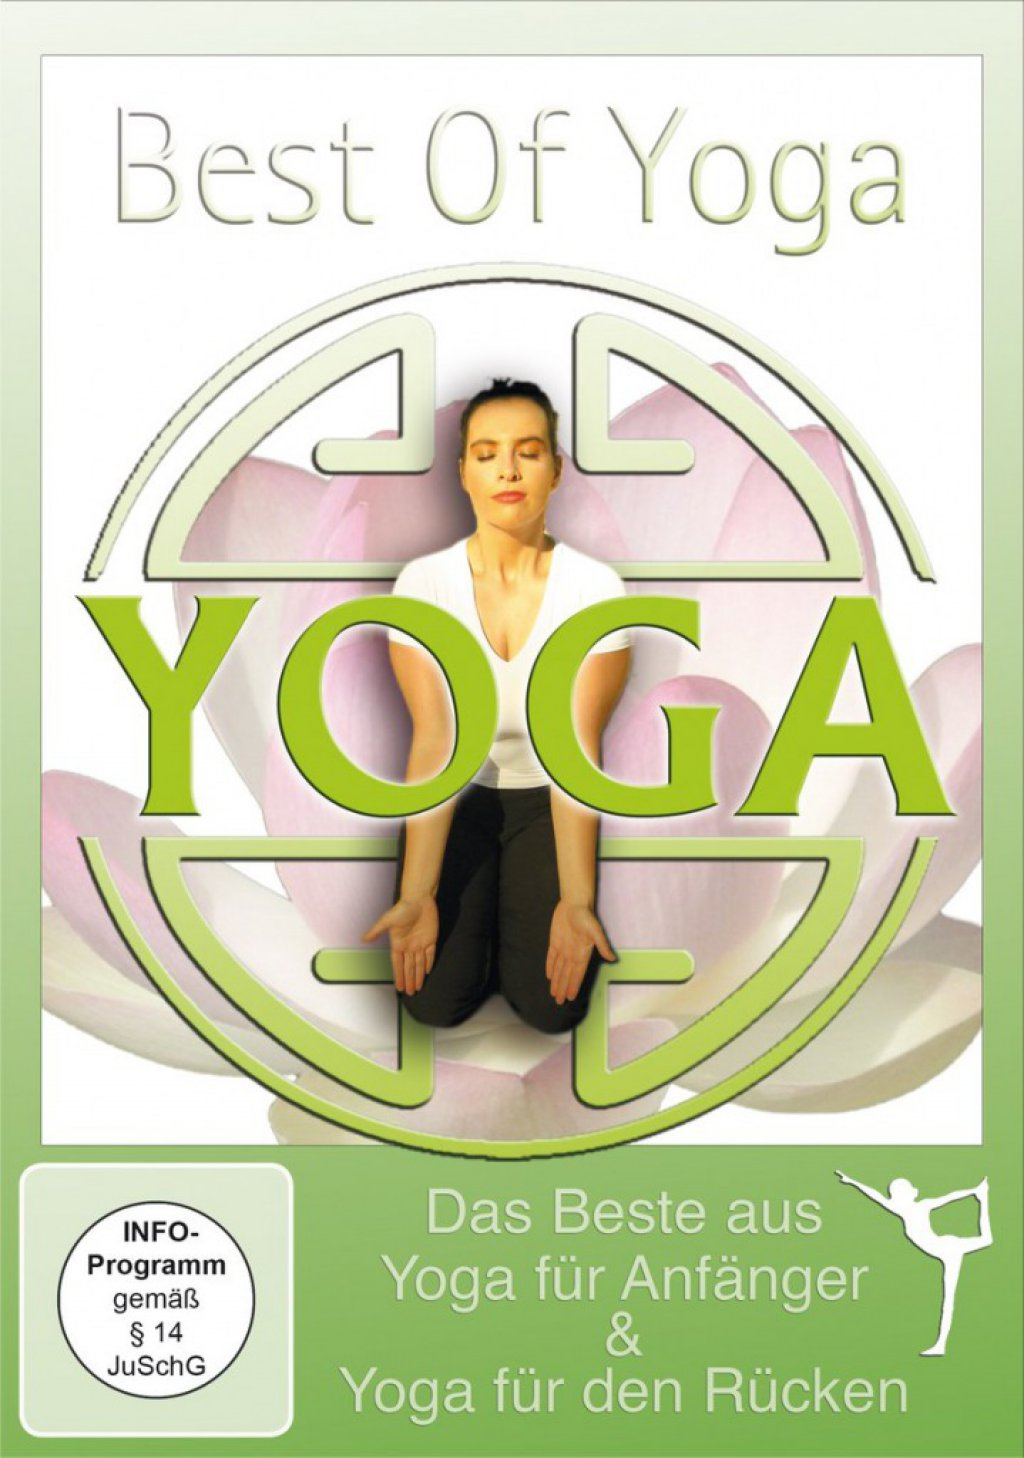 best of yoga das beste aus yoga f r anf nger yoga f r den r cken dvd neu 4029378121212 ebay. Black Bedroom Furniture Sets. Home Design Ideas